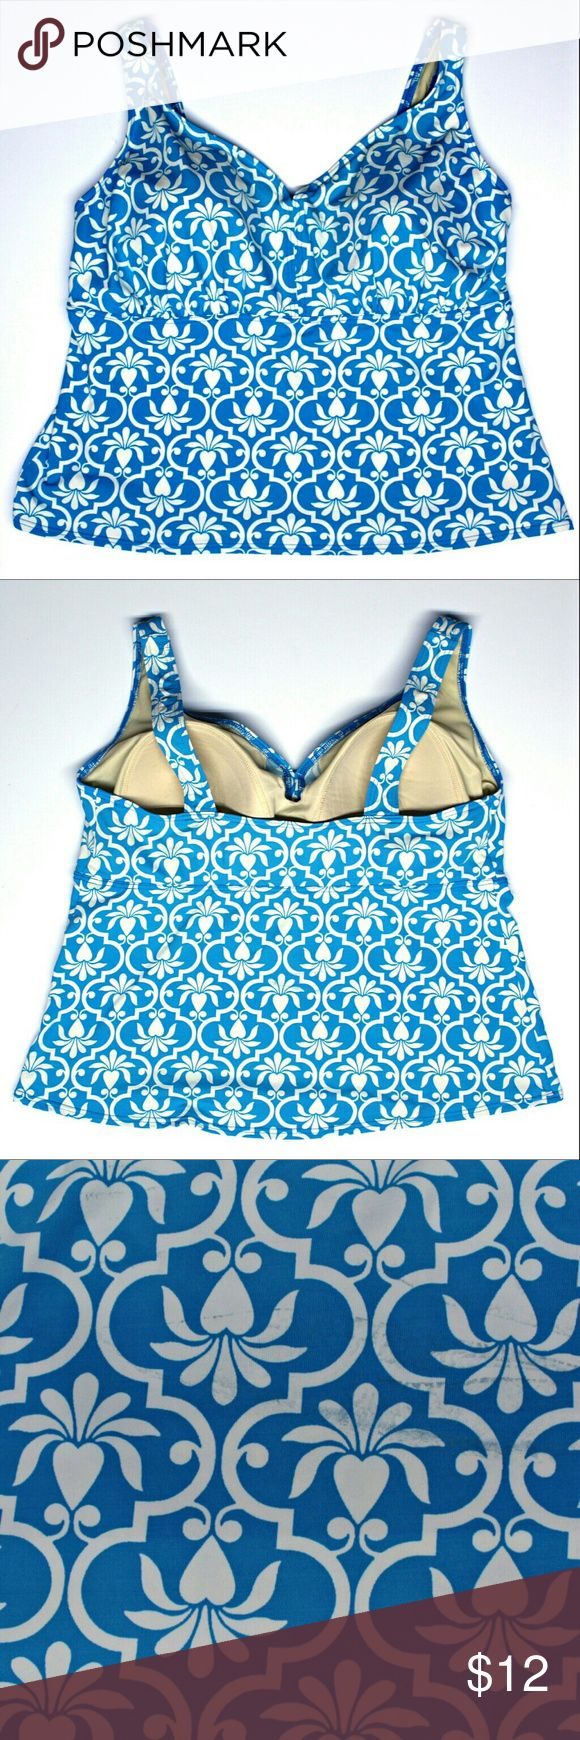 """Lands End Tankini Top Size 20W Bright Blue and White Lands End Tankini Top Size 20W Measurements: Underarm Seam to bottom- 15"""" Bottom horizontal (laying flat)- 25"""" Chest (laying flat)- 20.5"""" Colors are vibrant no pilling  *** Note third image shows light stain on back of top it's not very noticeable otherwise in great shape!*** Lands' End Swim"""